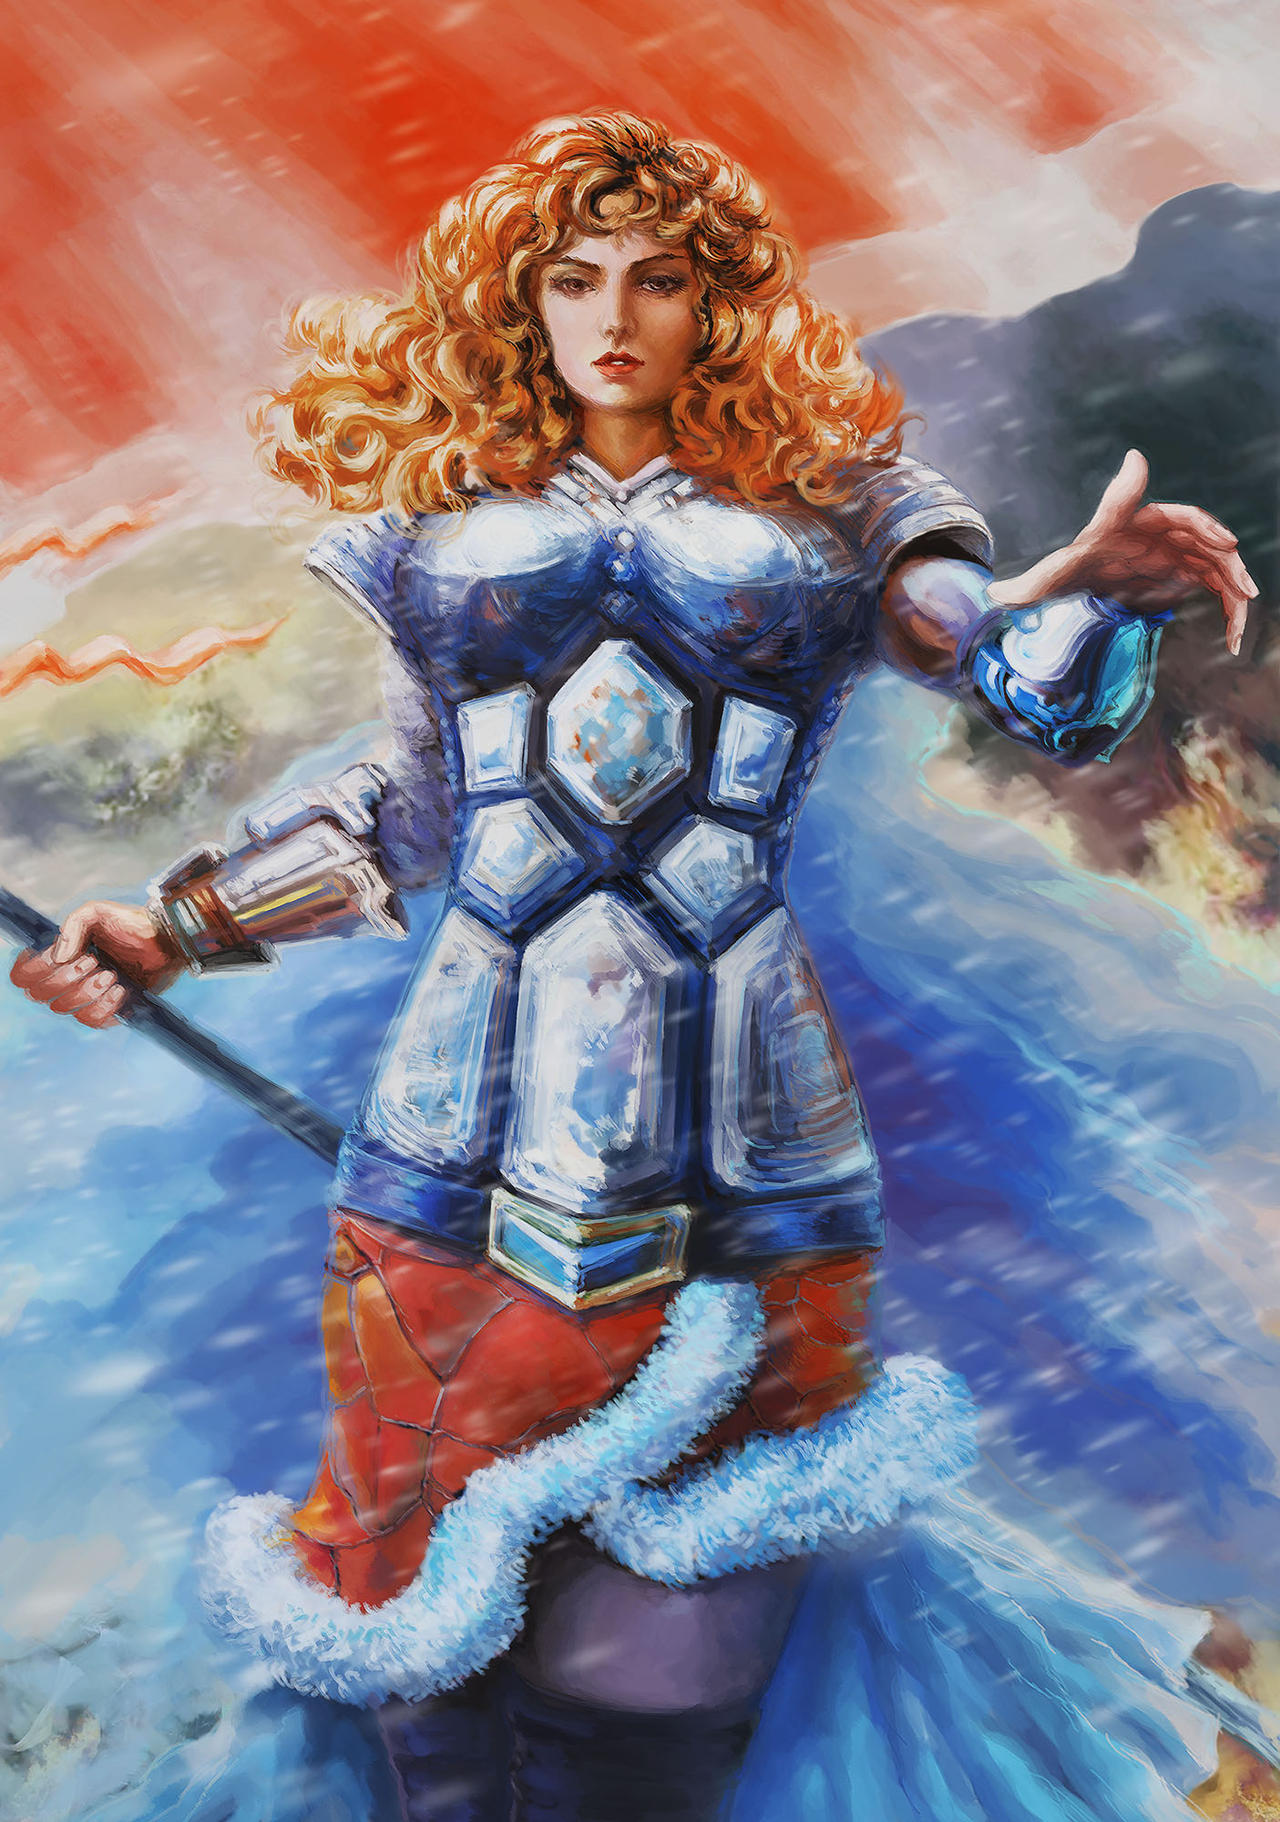 joan_of_arc_in_fantasy_world_by_vilenchik-d9pi9ku.jpg